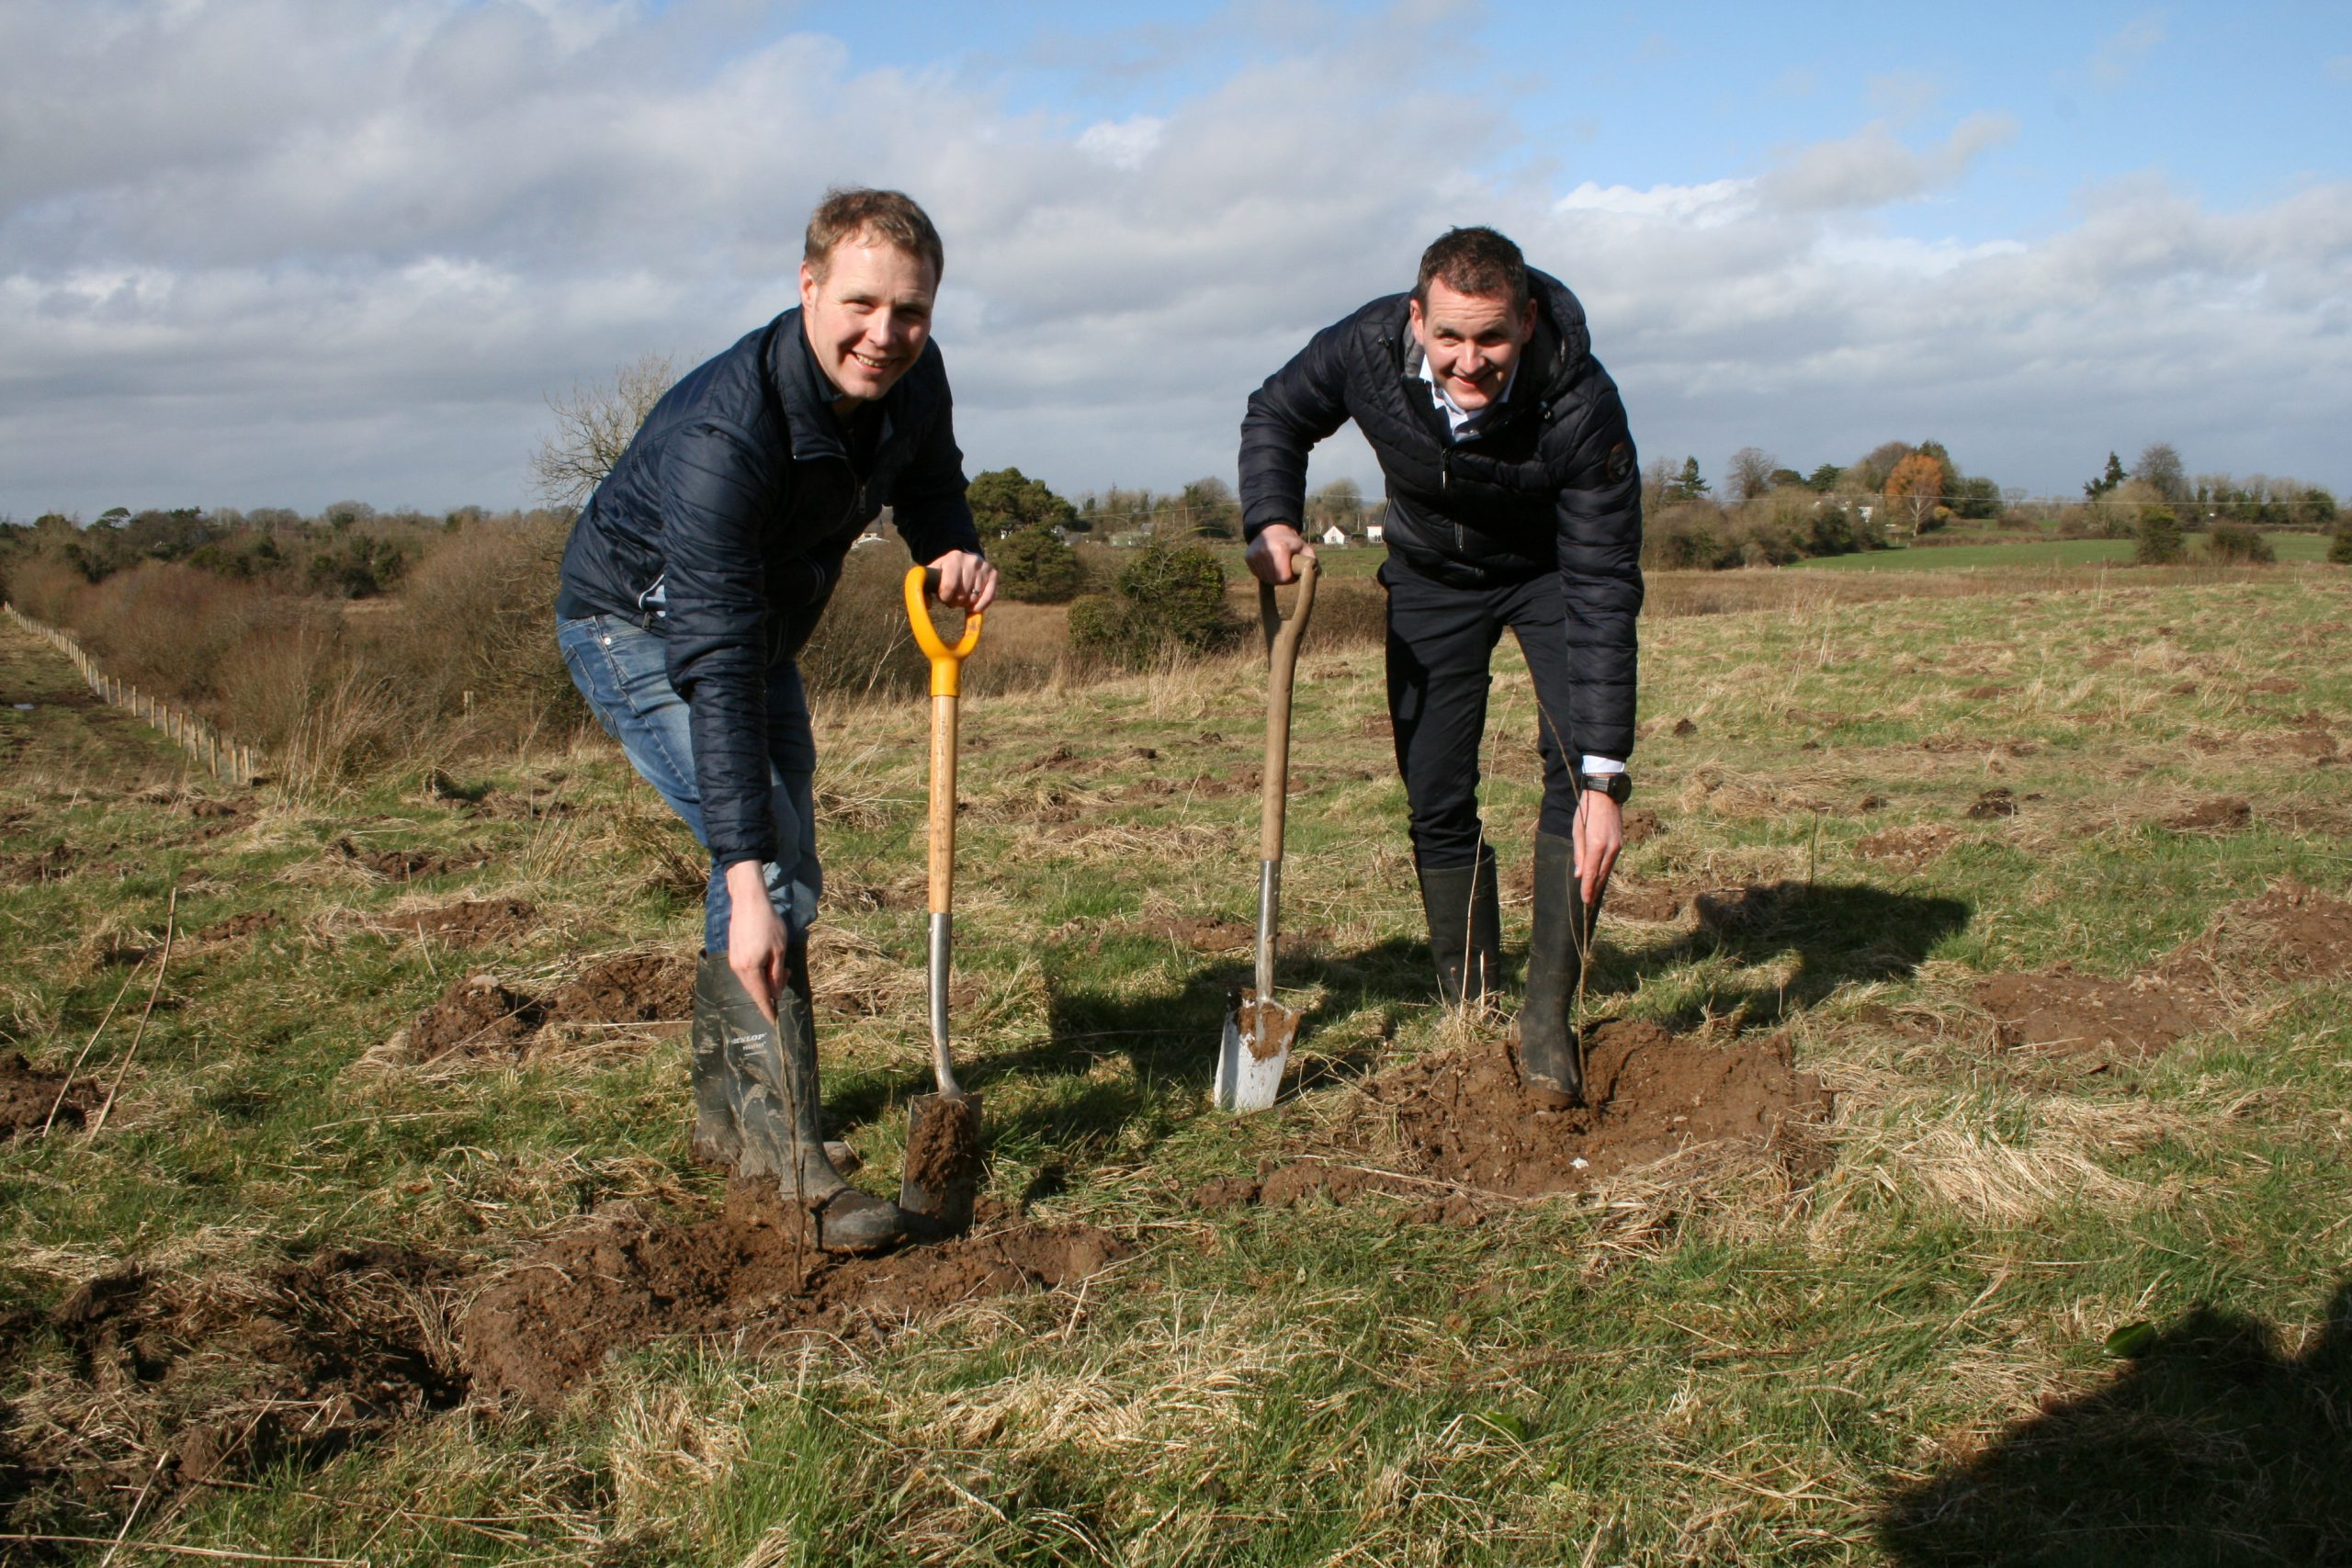 Lidl Ireland Helps to Absorb up to 12,500 Tonnes of Carbon Through Native Woodland Scheme